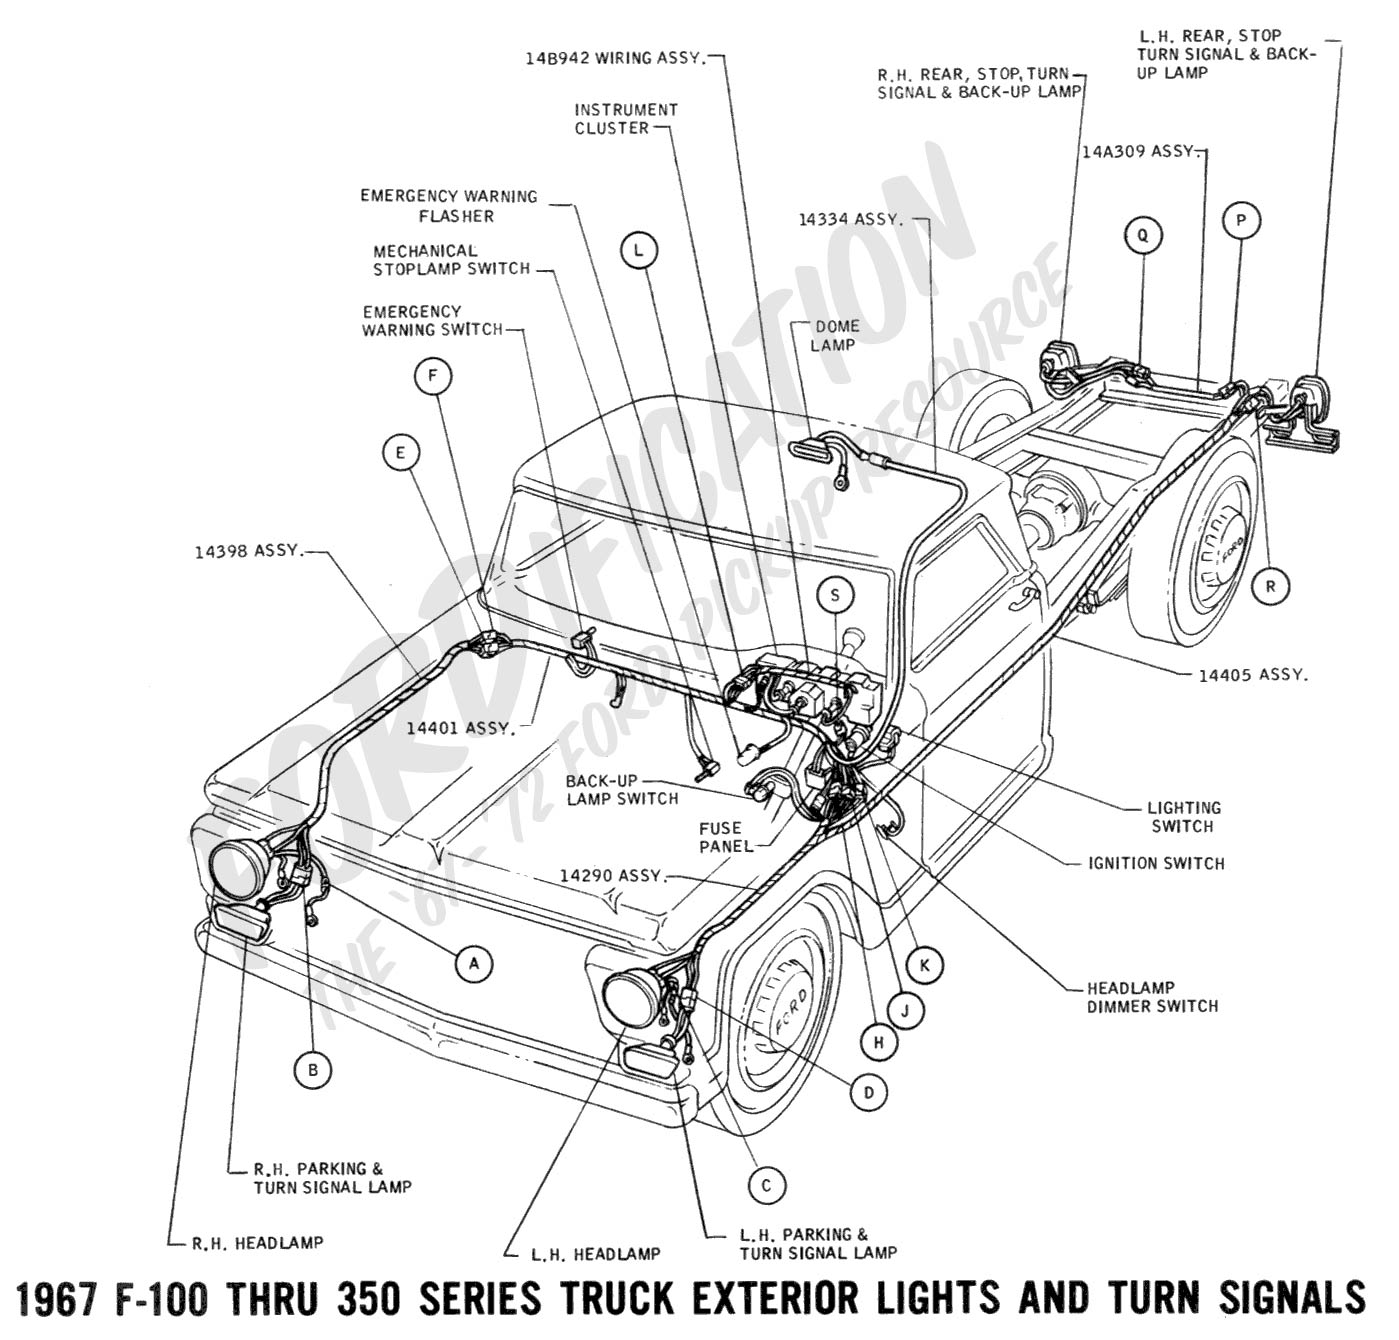 Taurus Gas Tank Diagram Trusted Wiring 1993 Ford F250 Rear 43 Gasoline